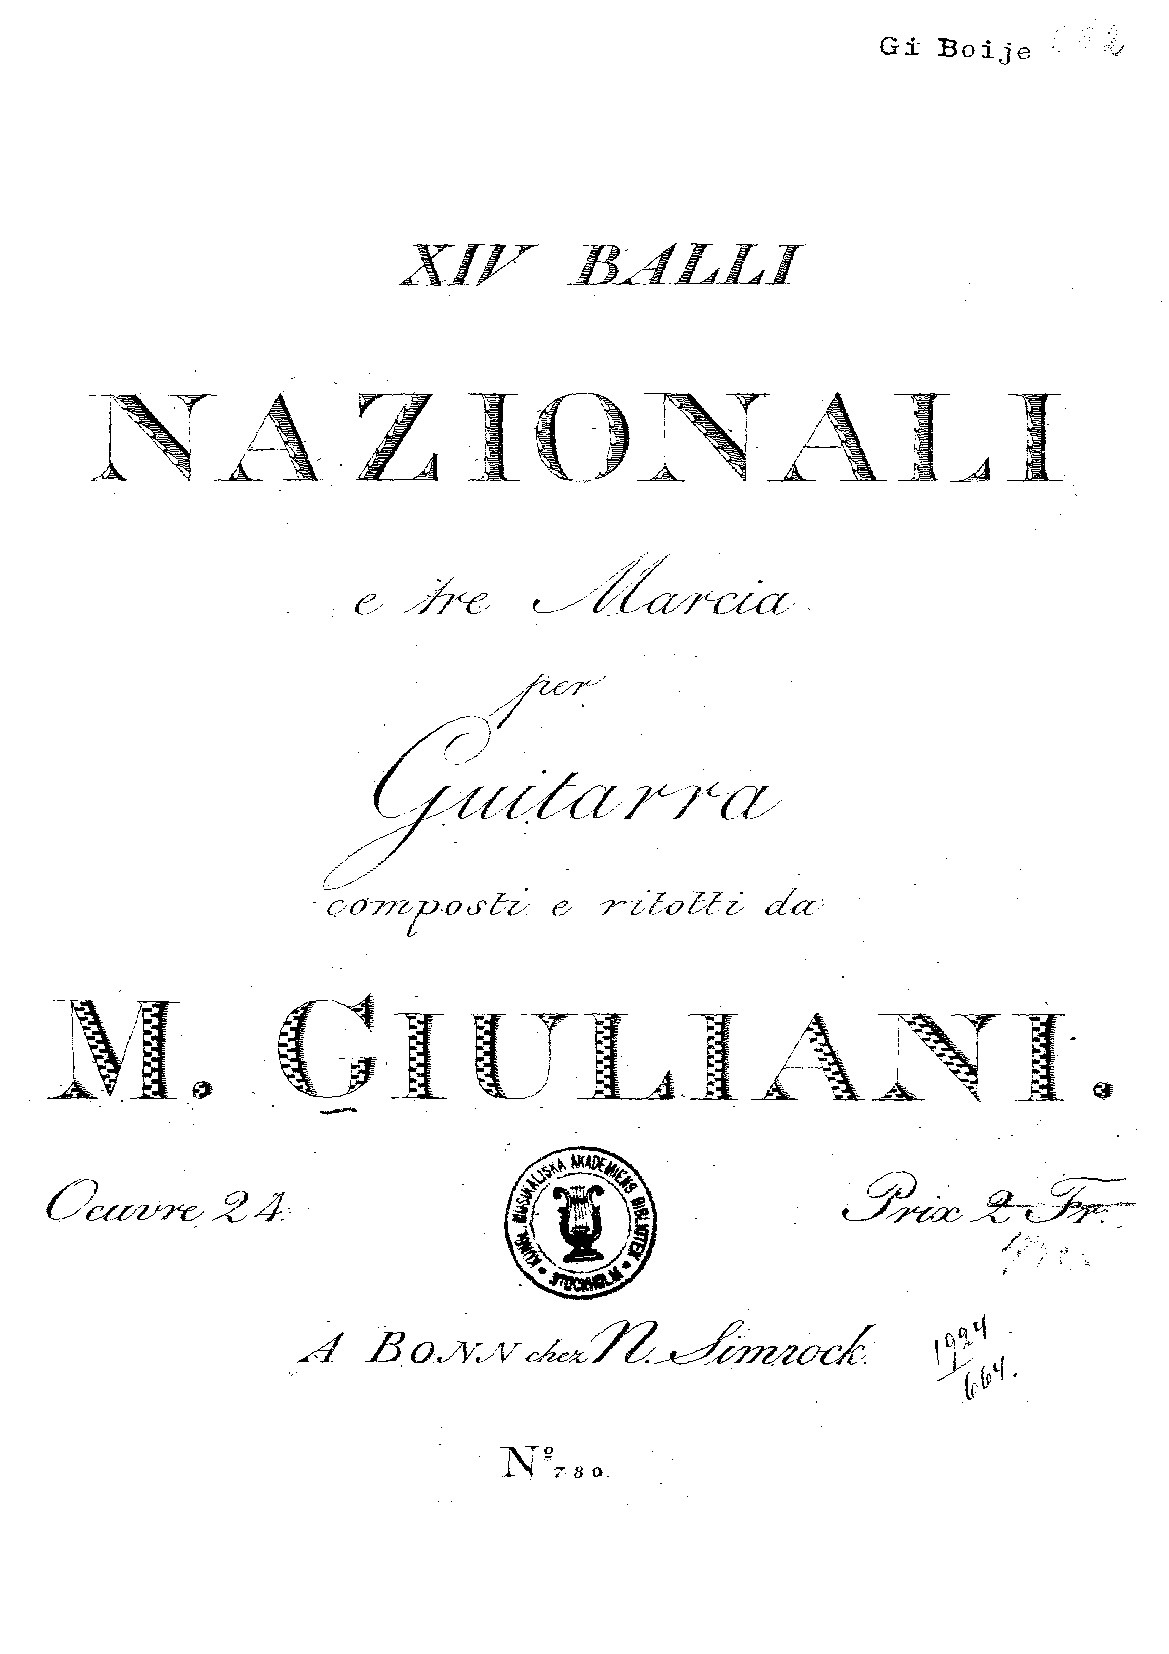 Op. 24b Fourteen National Dances and Three Marches